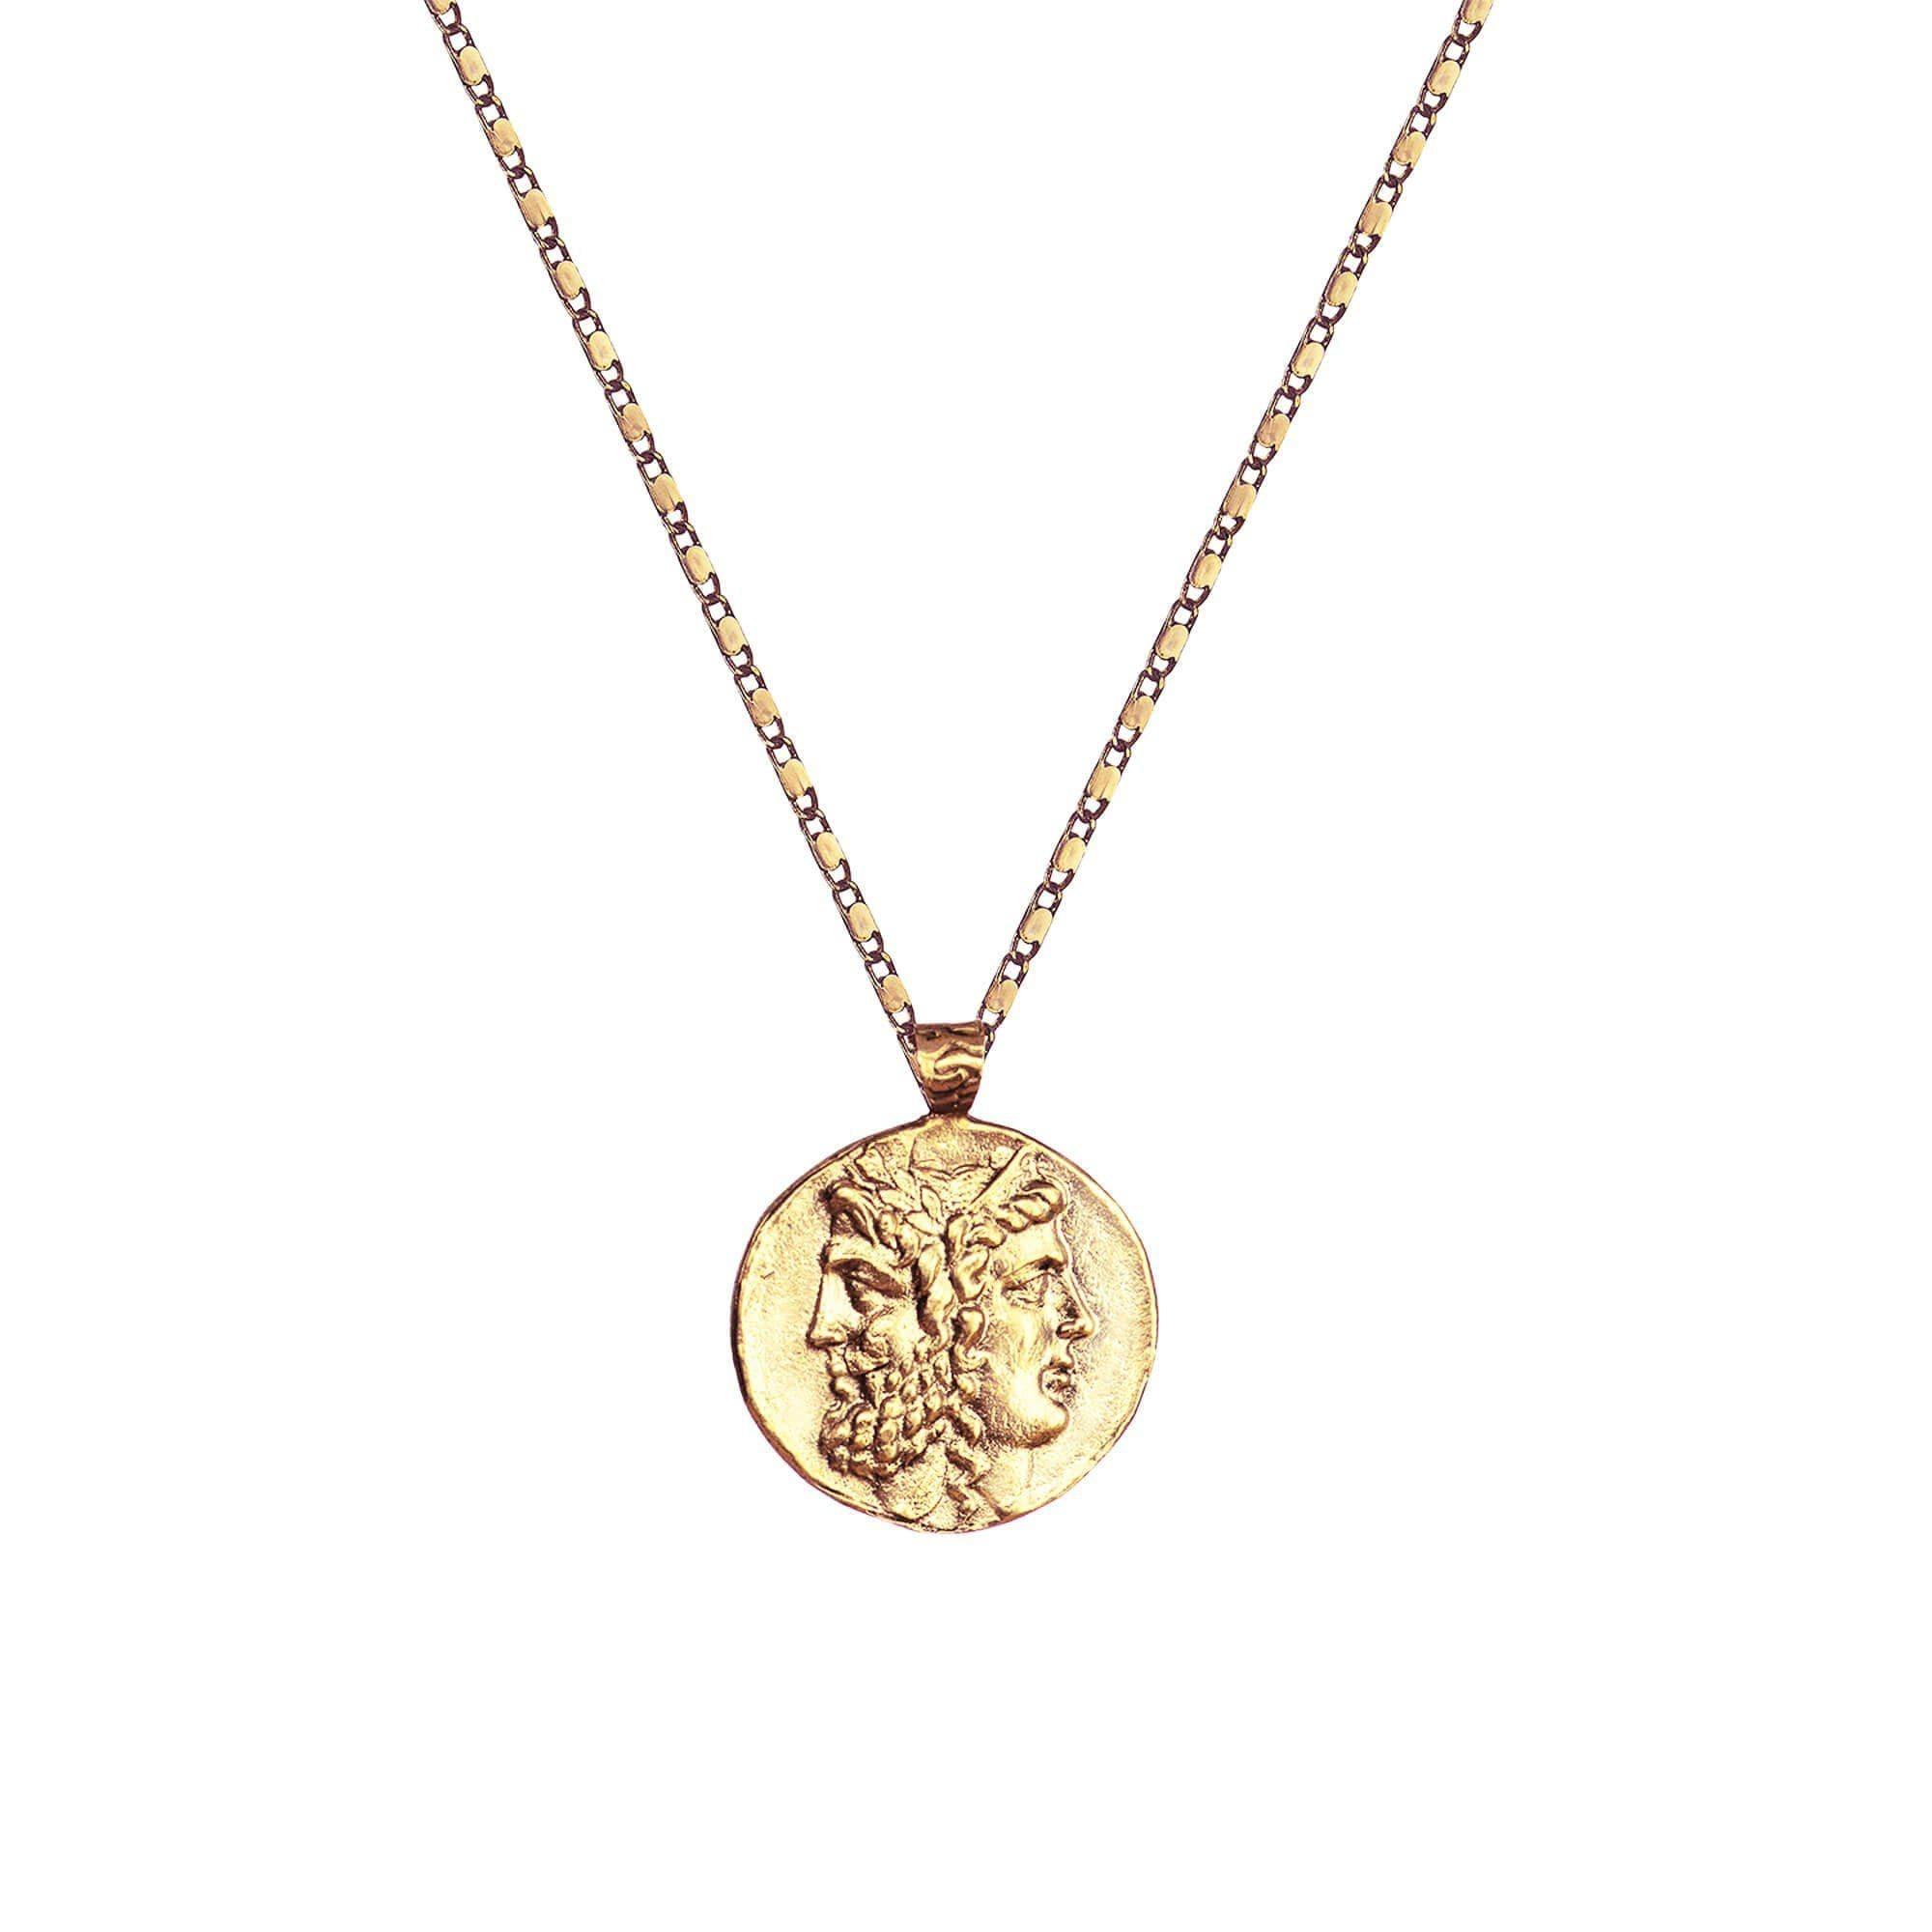 Pendant and Necklace Ancient Greek Zeus and Hera Coin pendant & Necklace Ancient Treasures Ancientreasures Viking Odin Thor Mjolnir Celtic Ancient Egypt Norse Norse Mythology